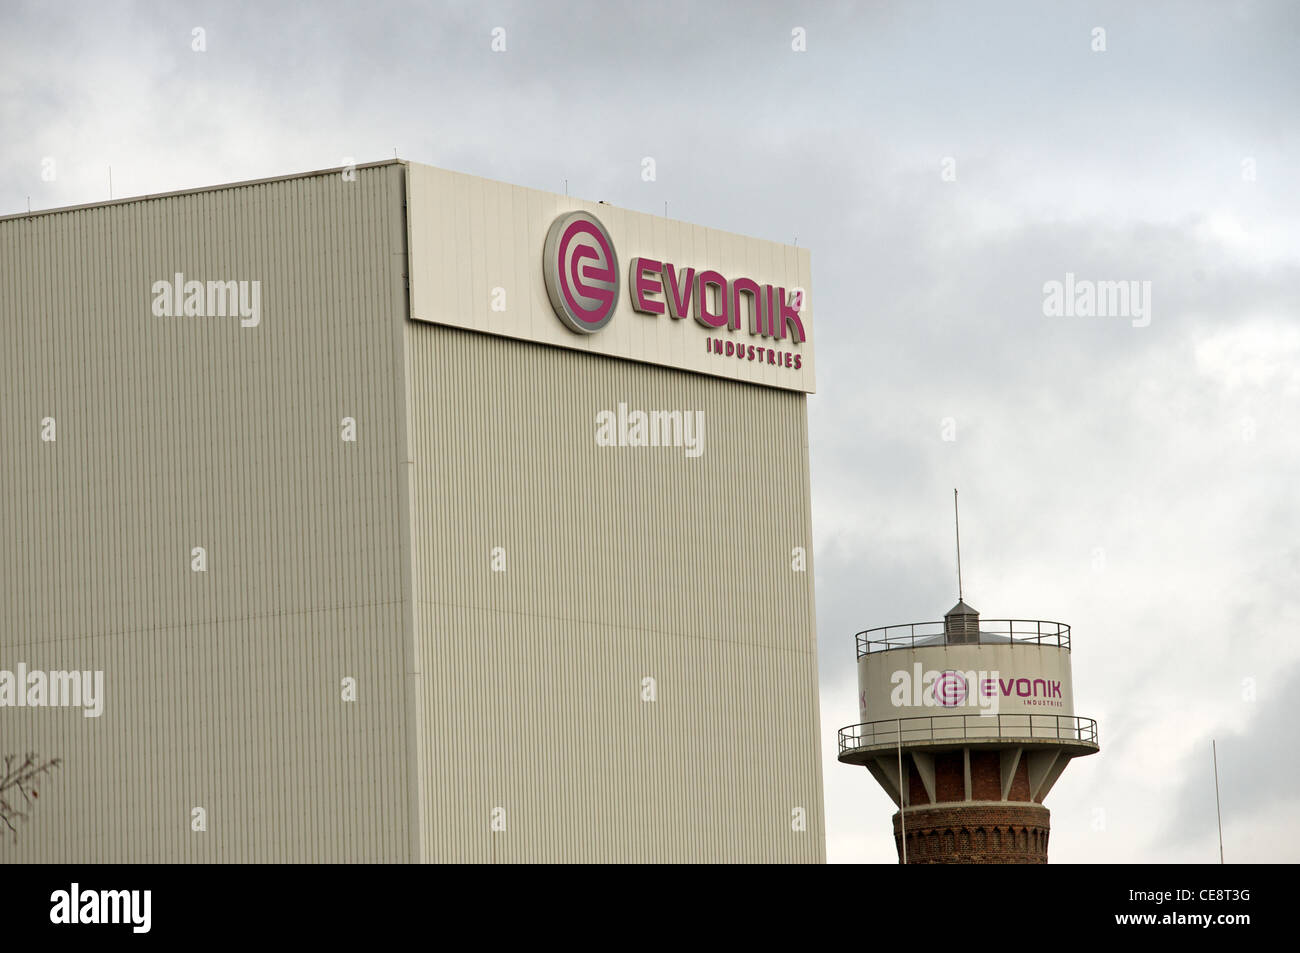 Evonik Industries Germany - Stock Image